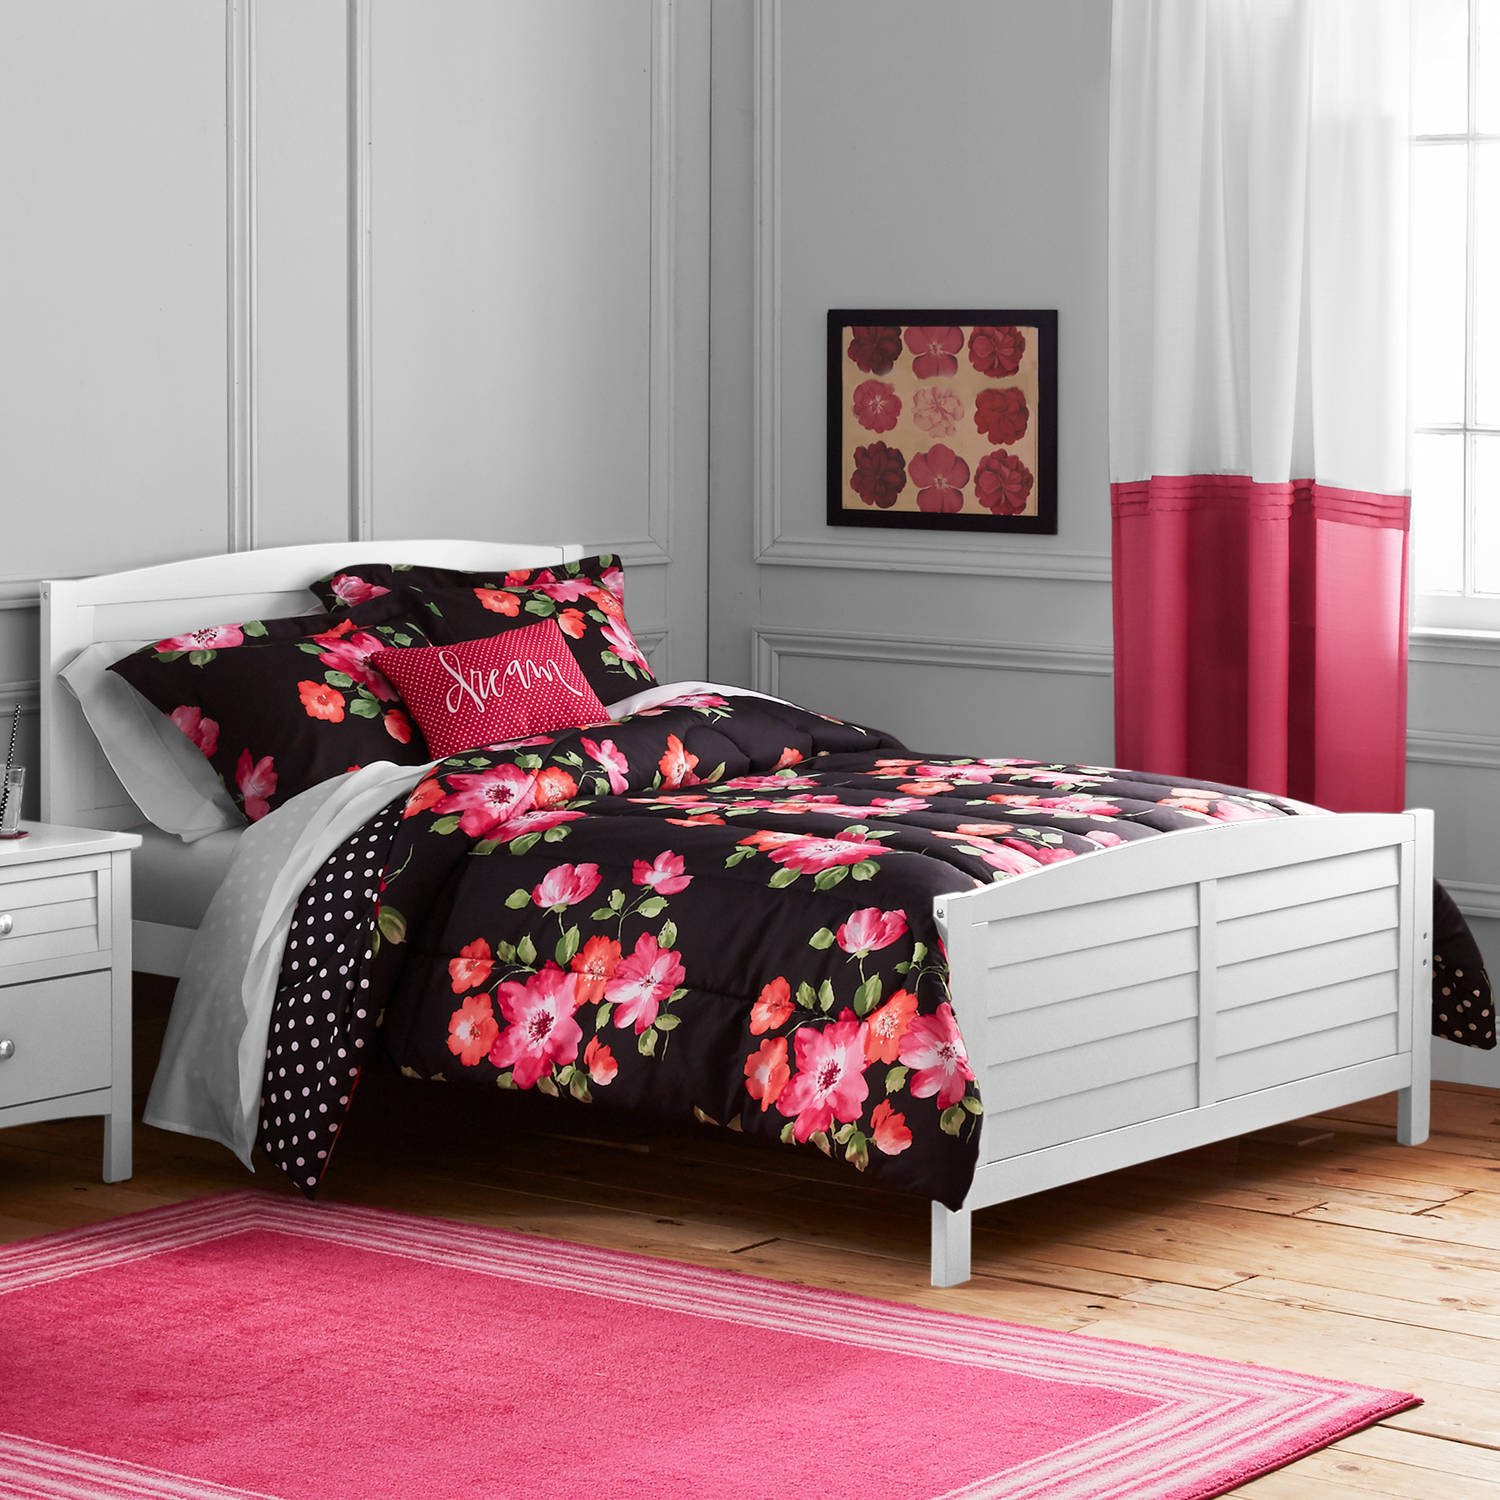 Better Homes and Gardens Kids Size Painterly Floral Comforter Set by Keeco, LLC